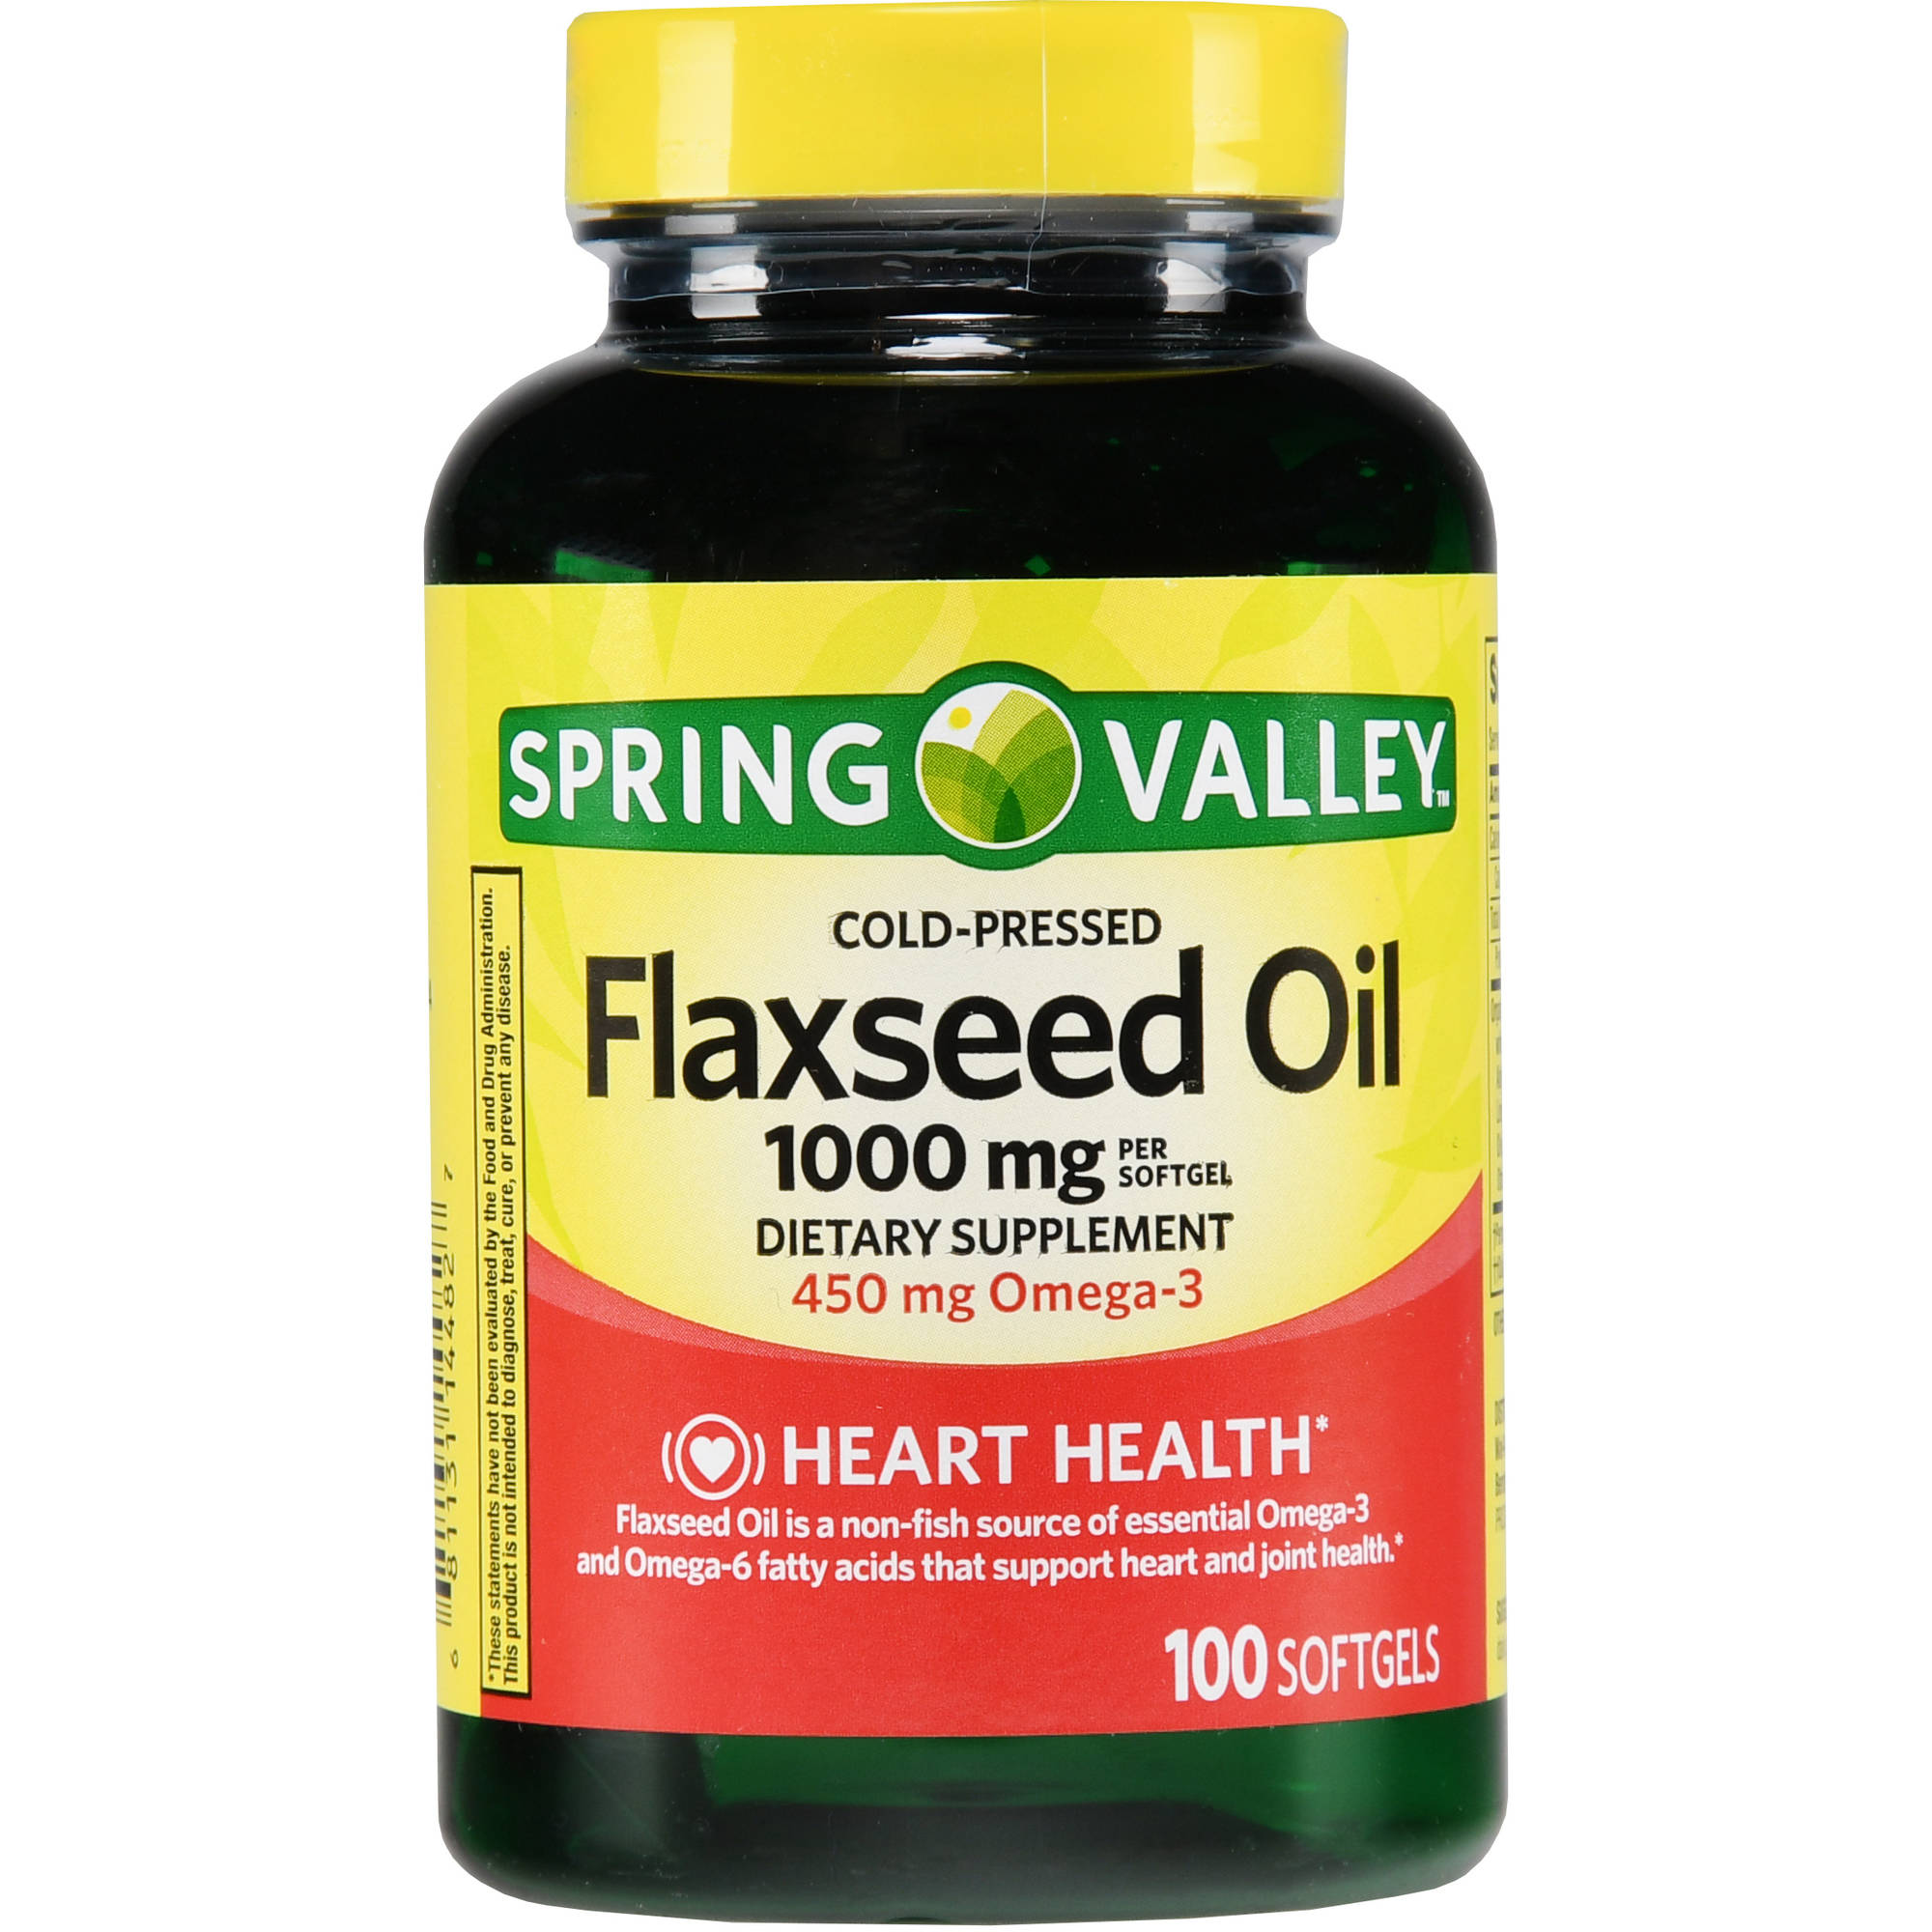 Spring Valley Flaxseed Oil Softgels, 1000 mg, 100 Ct